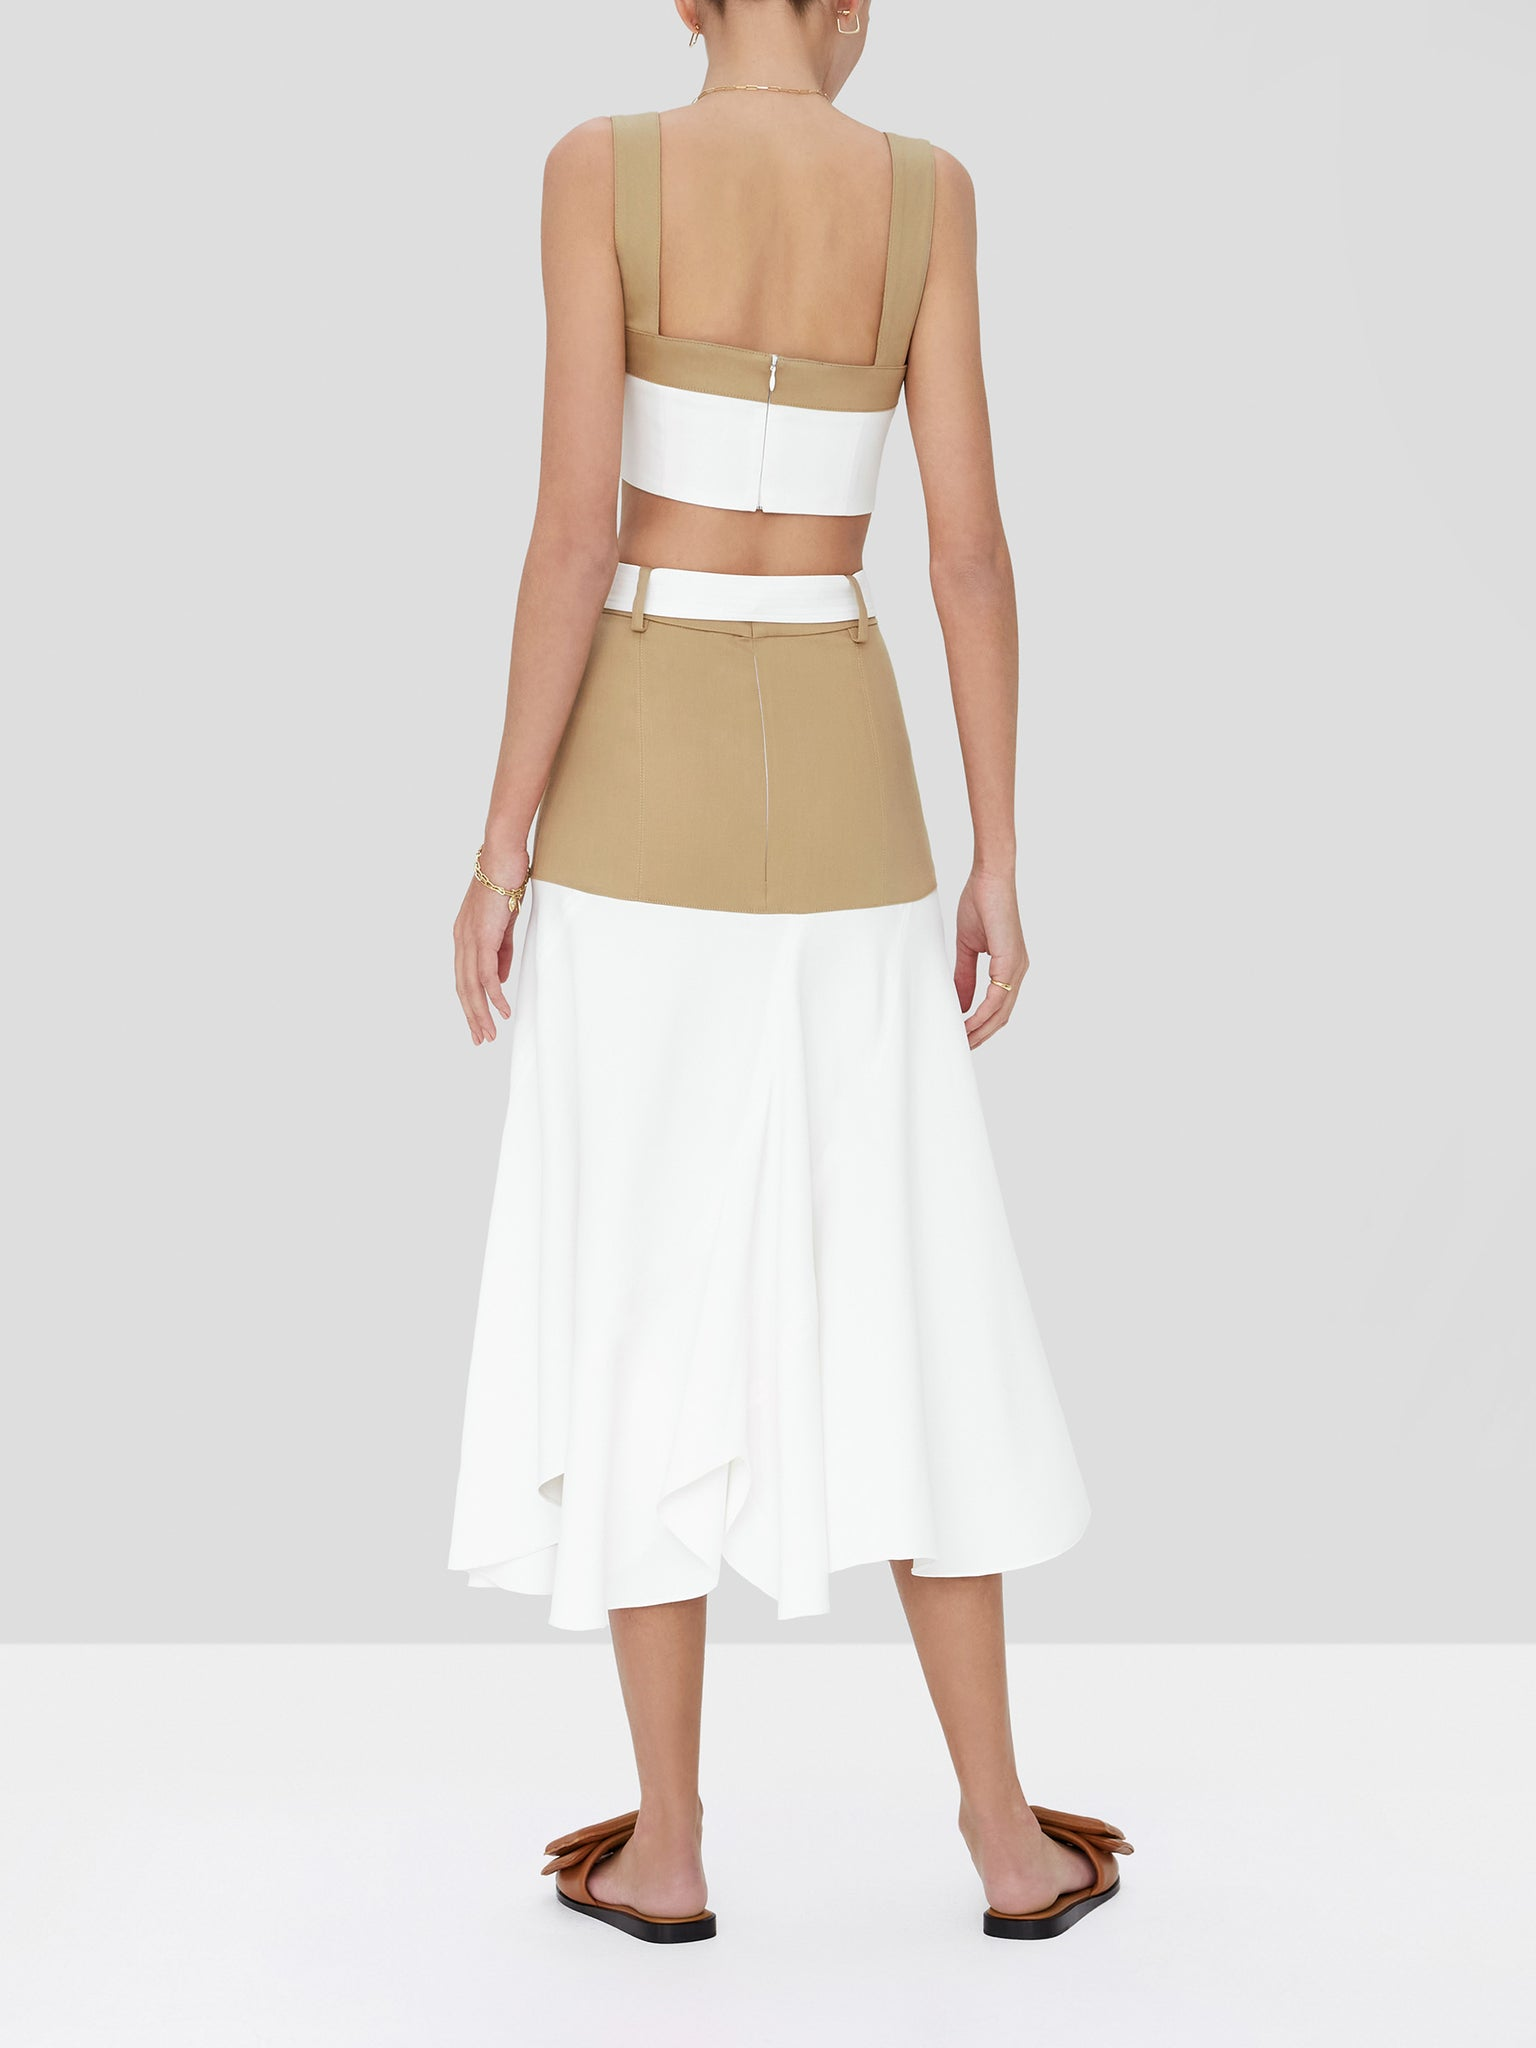 camila skirt in tan/white - Rear View